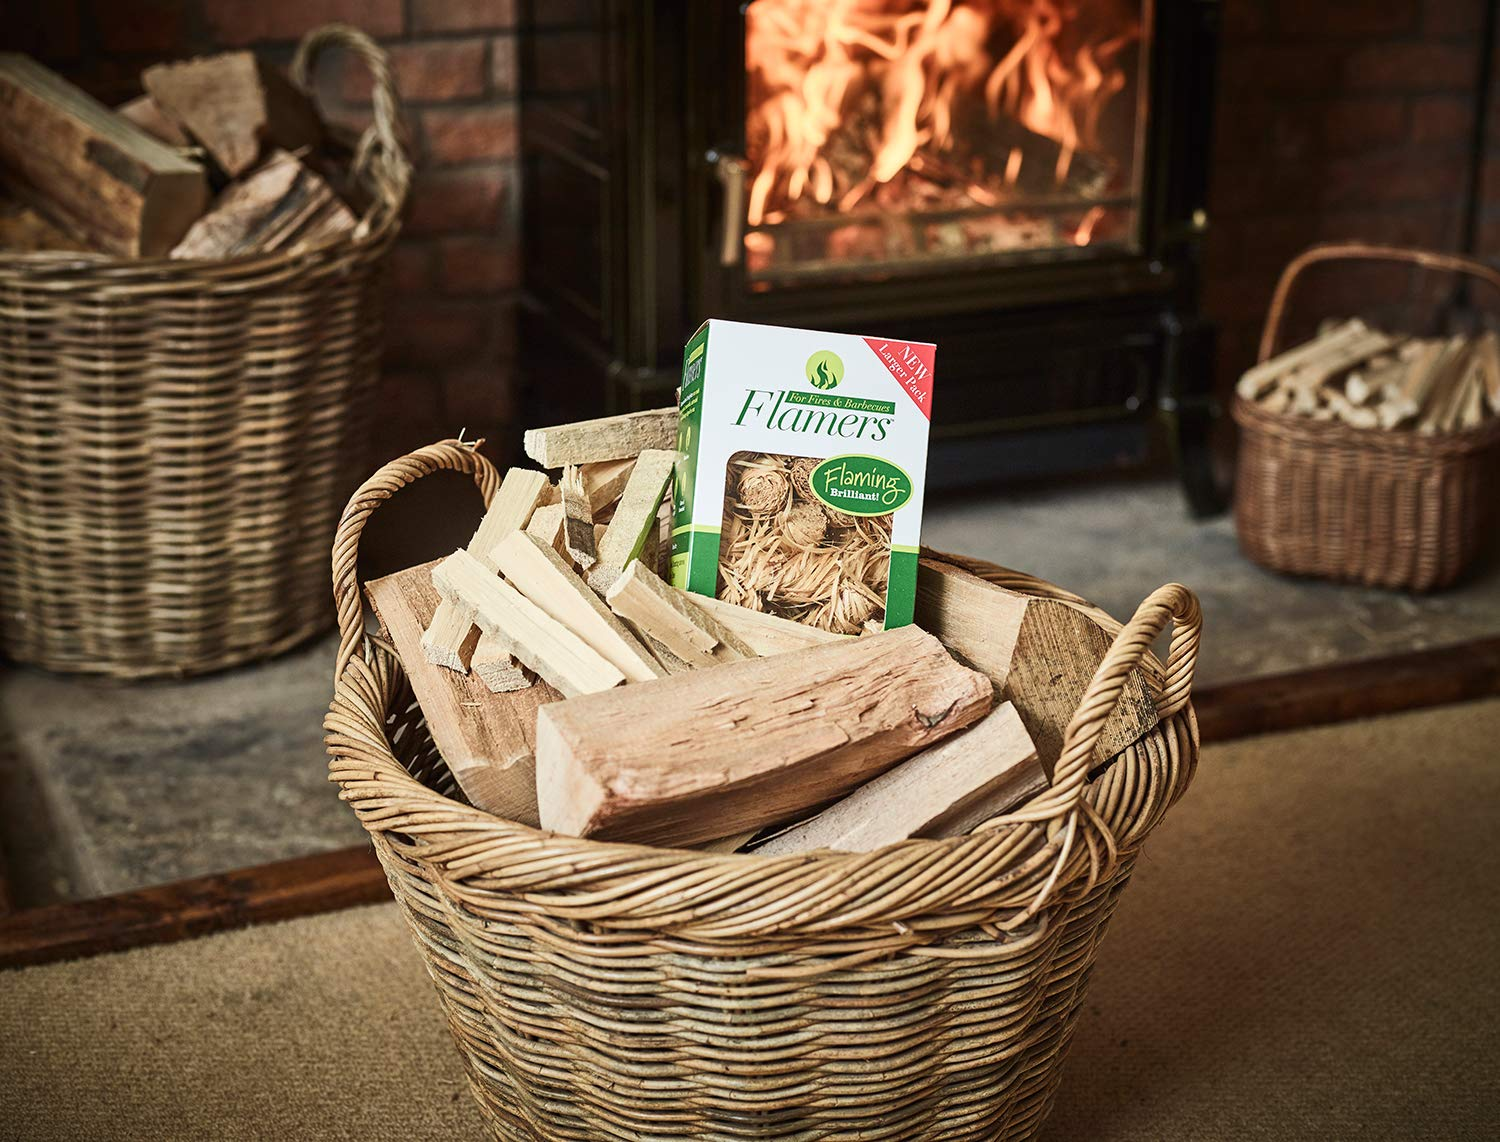 Flamers Natural Firelighters For Woodburners, Stoves, Barbeques and Campfires (200 units) 3